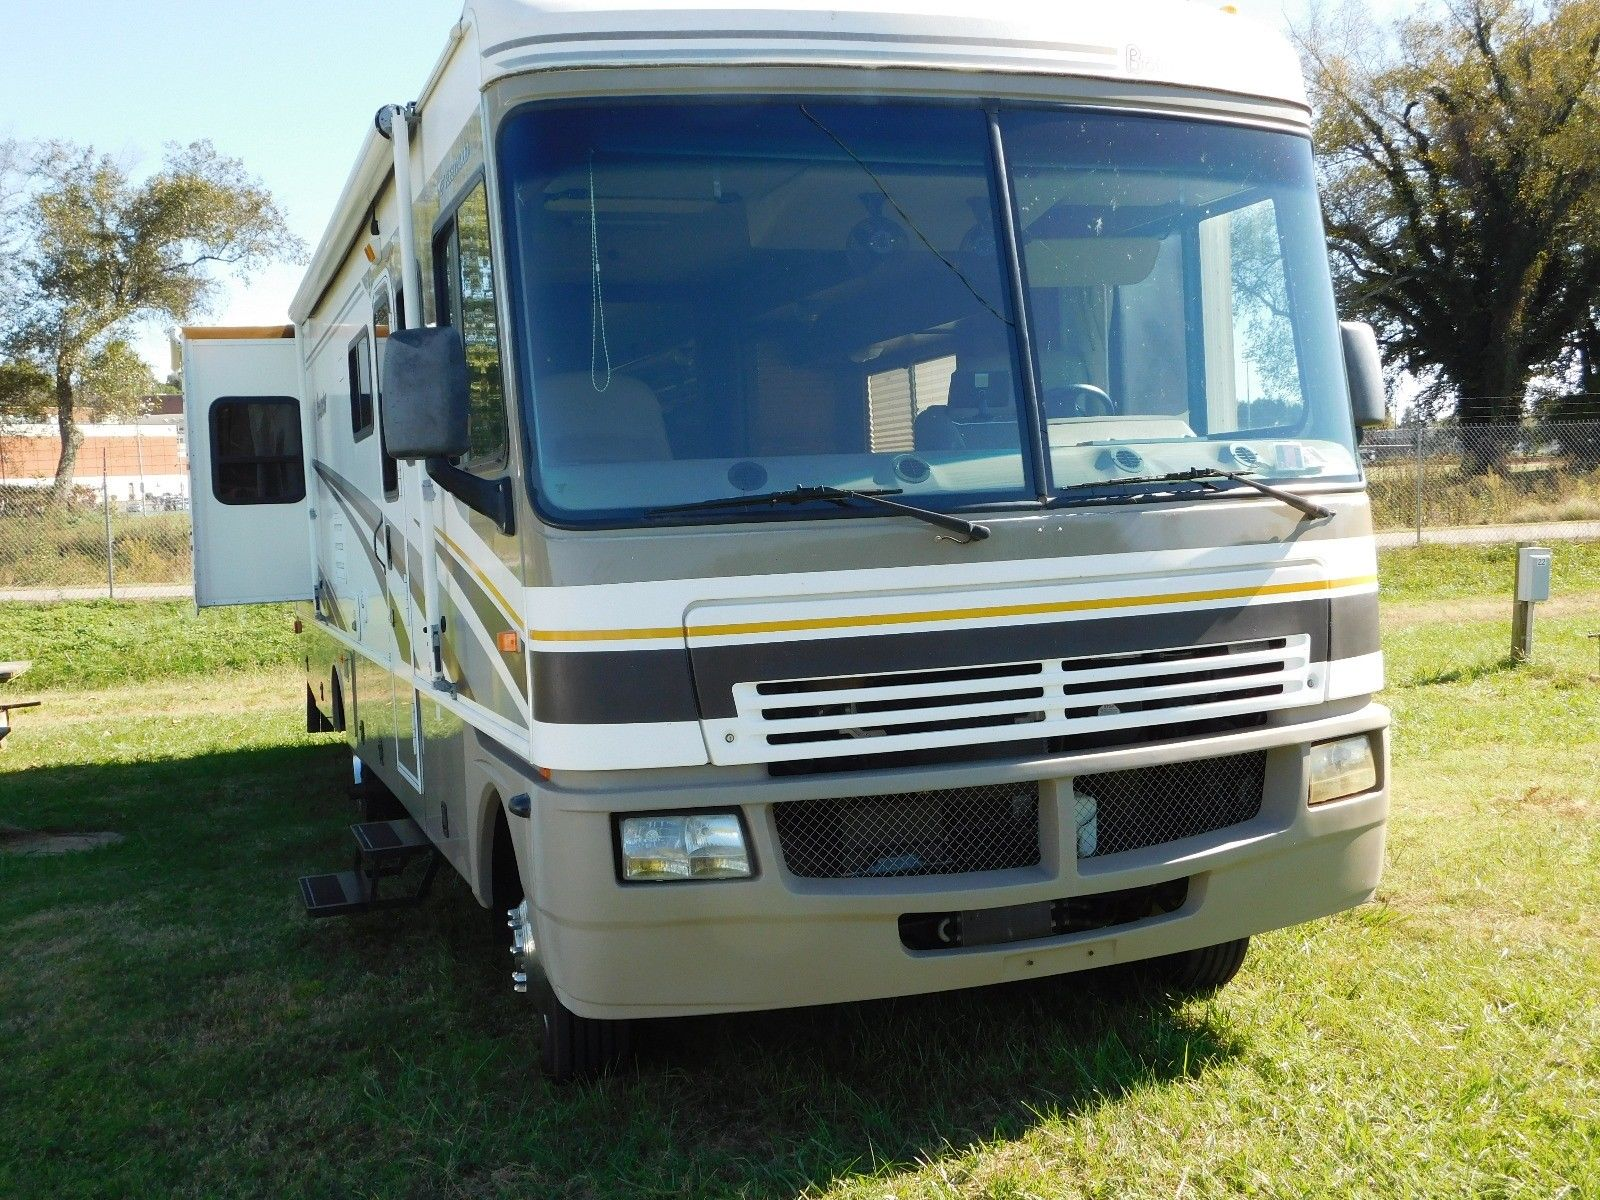 low miles 2004 Fleetwood Bounder camper for sale